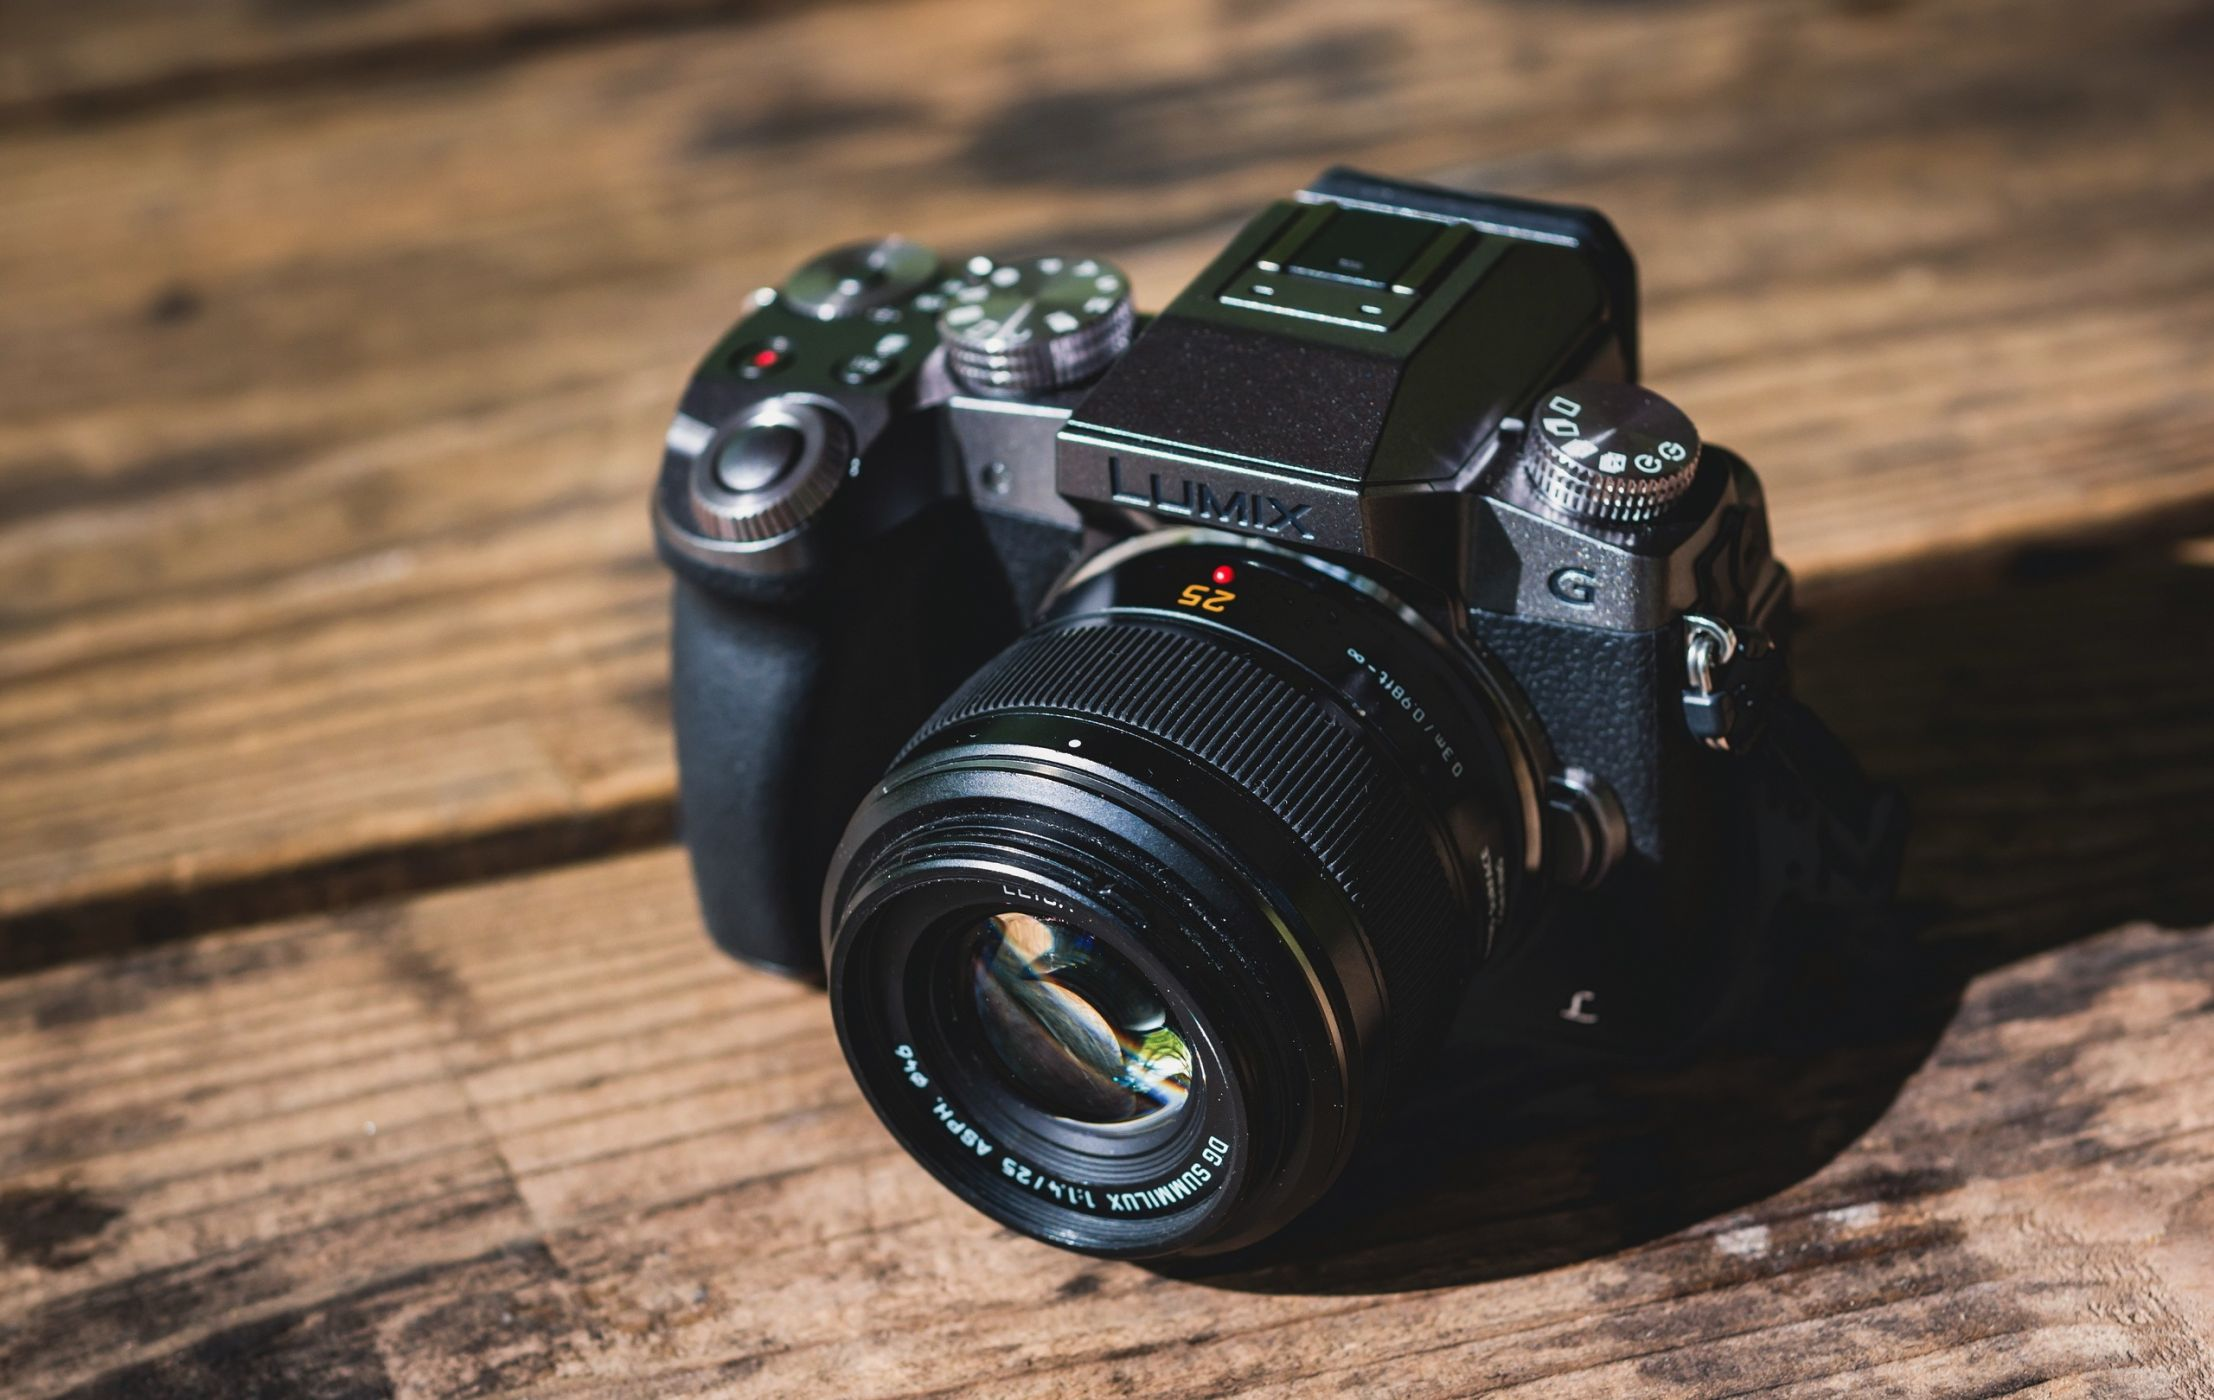 The Best Combination of Features Camera